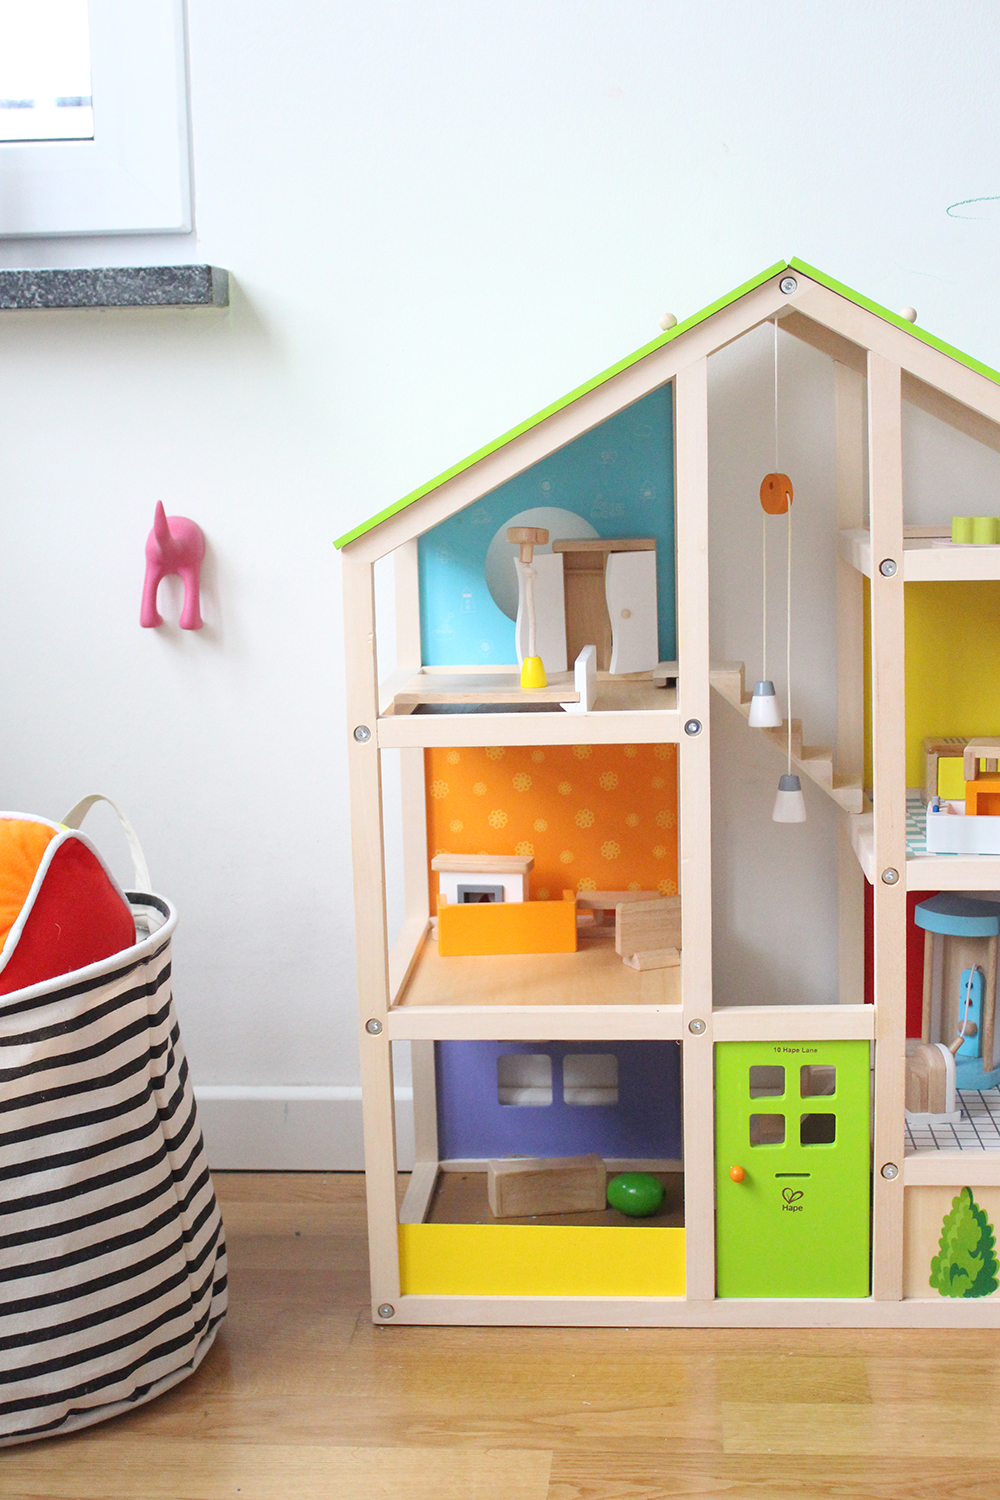 Ikea kinderzimmer inspiration  Wohnzimmerz: Ikea Kinderzimmer With A Lovely Journey: Inspiration ...